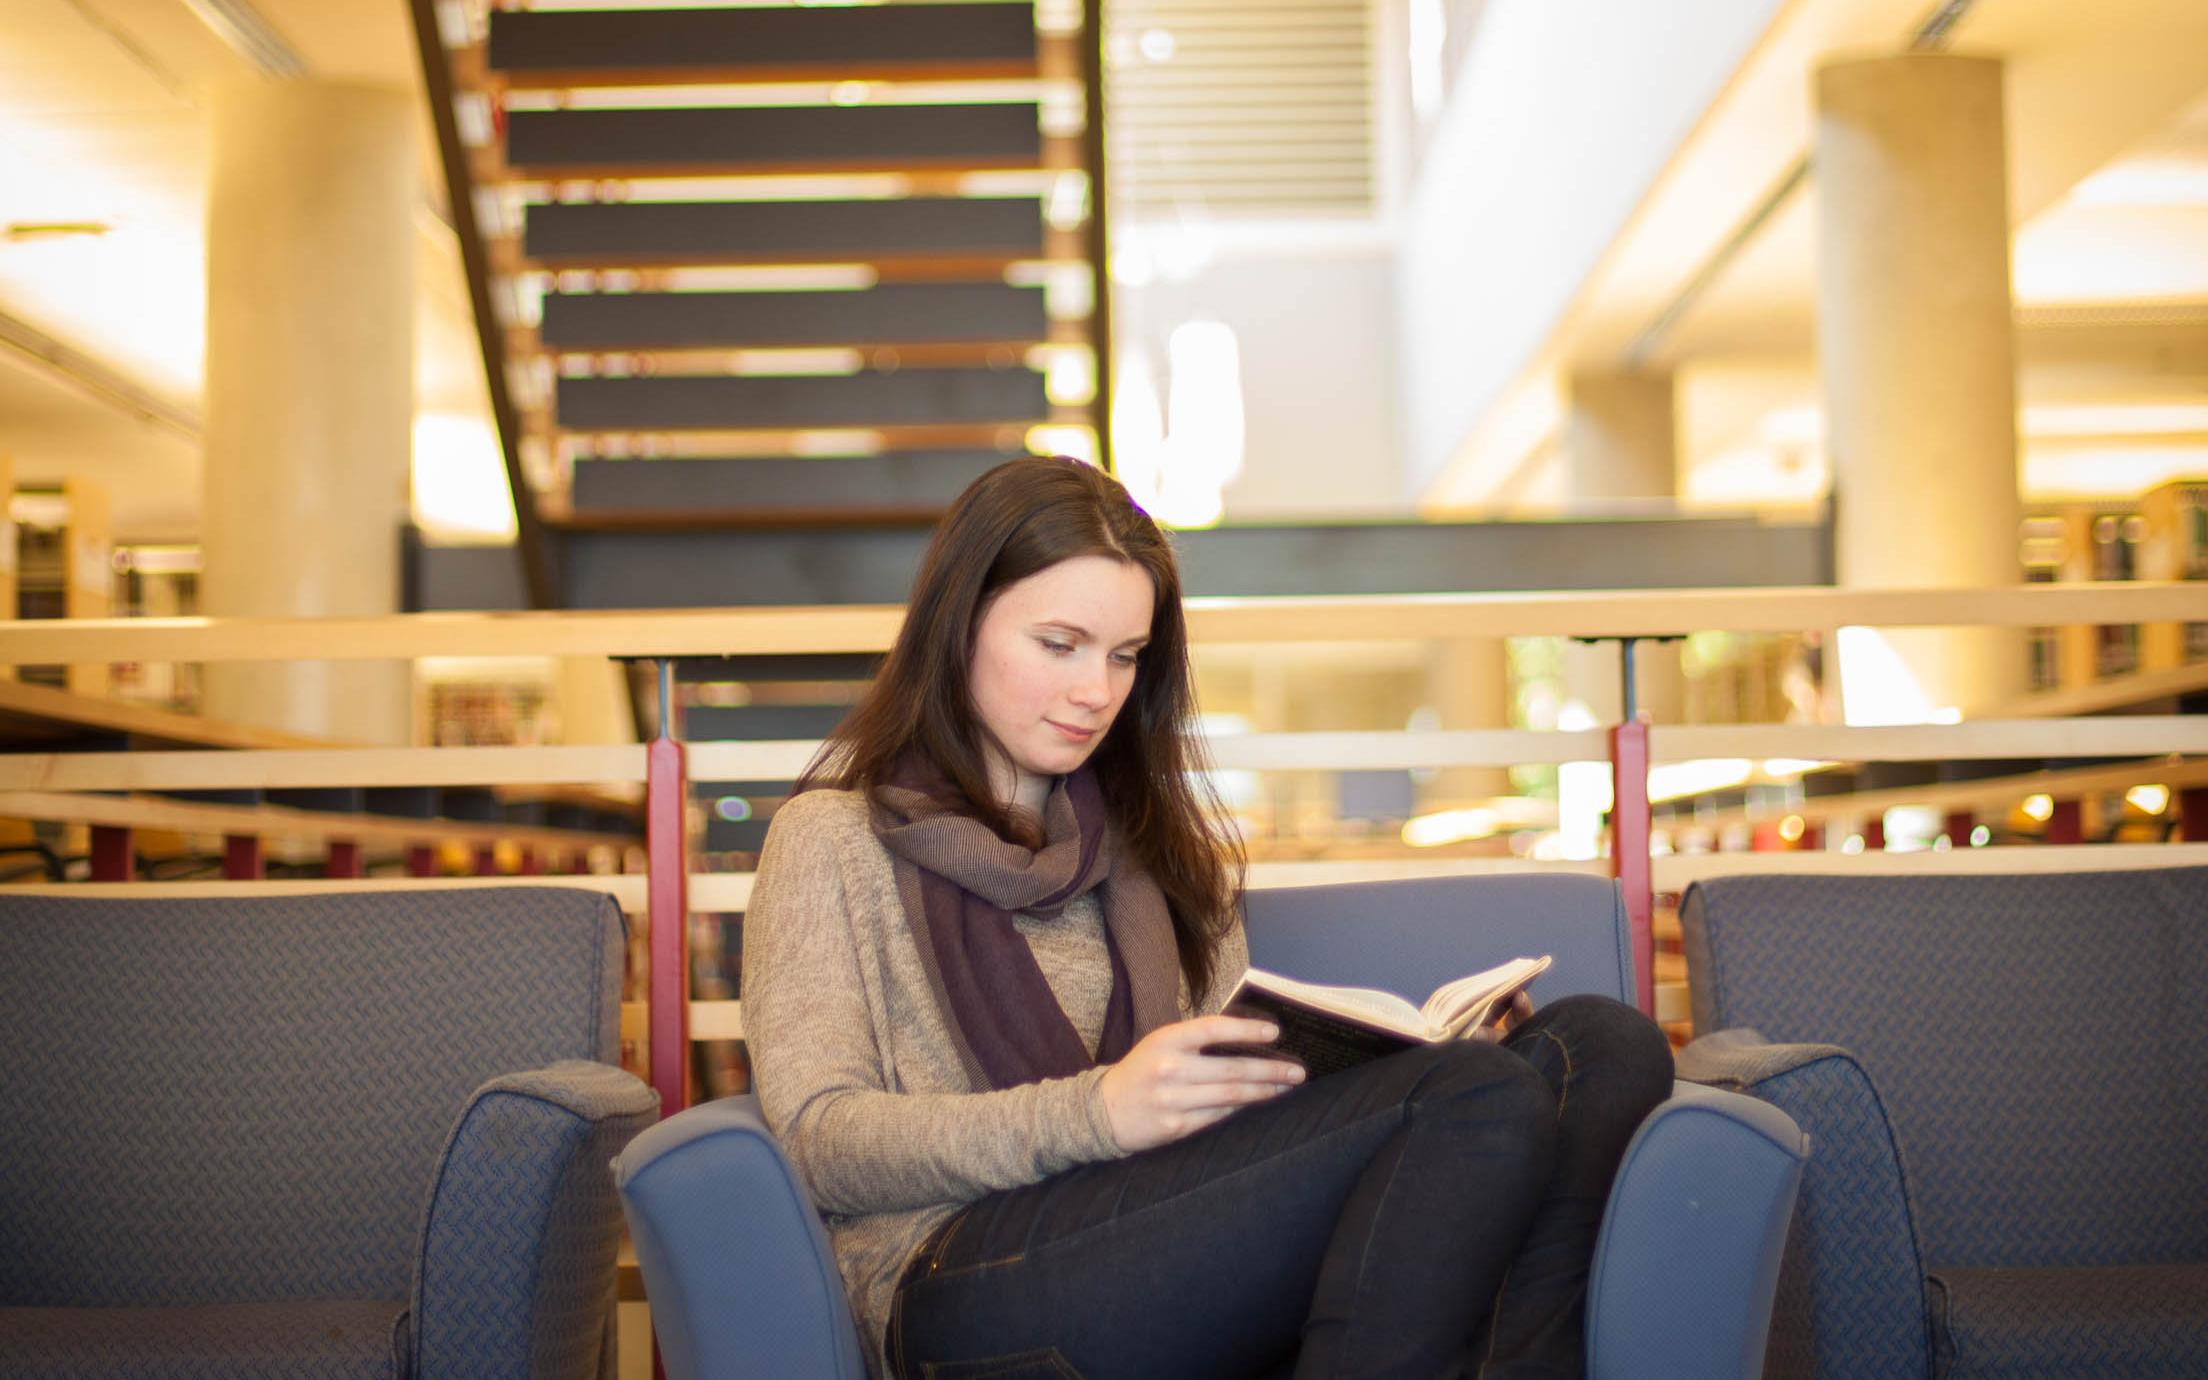 A Bachelor of Arts in English Honours, Major, Minor student studying for her writing courses in the library